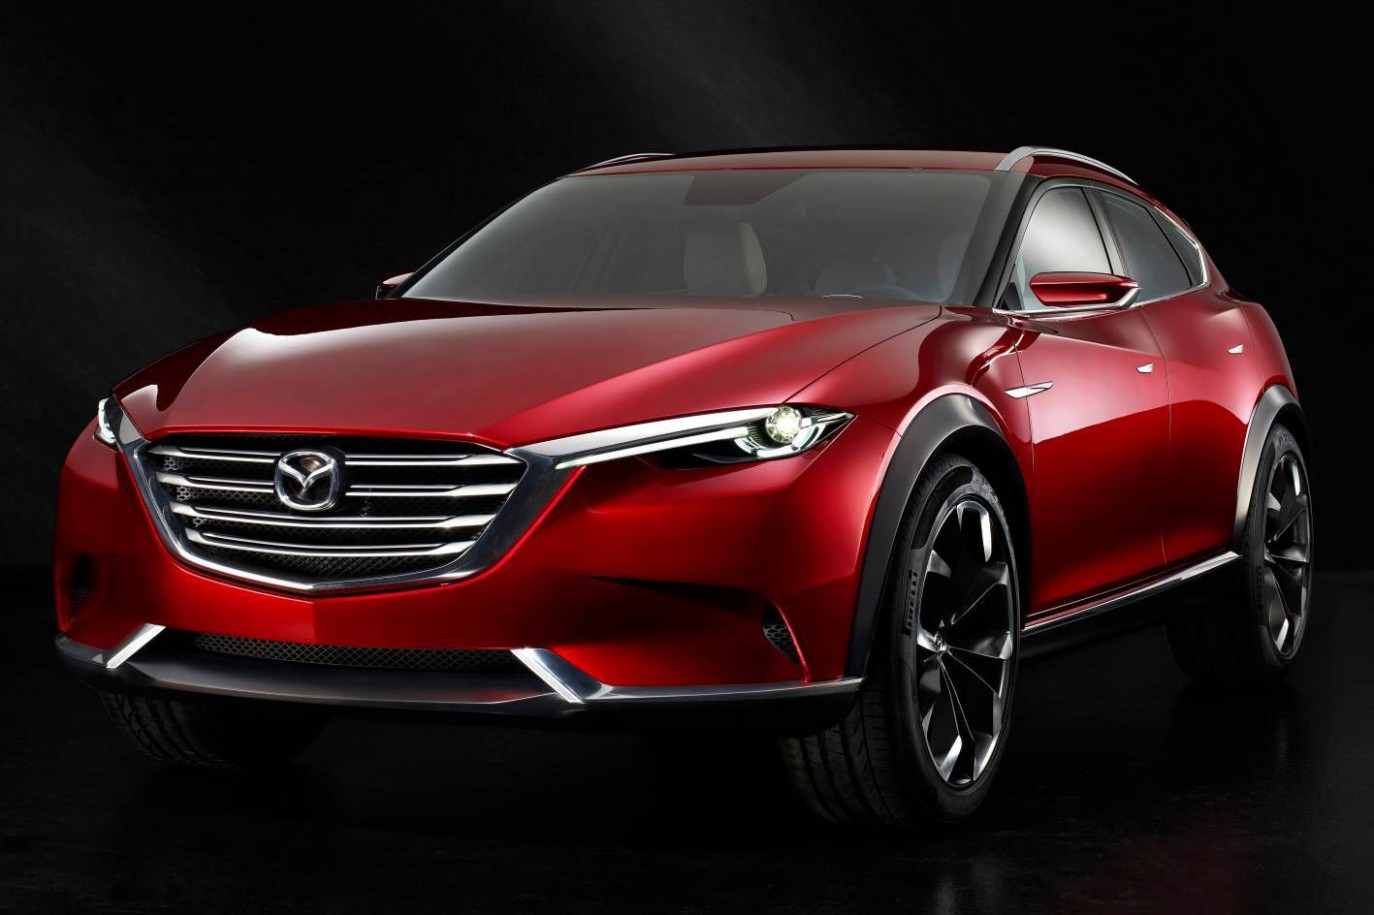 8 Mazda CX 8 Release Date, Specs and Price Rumor - New Car ...